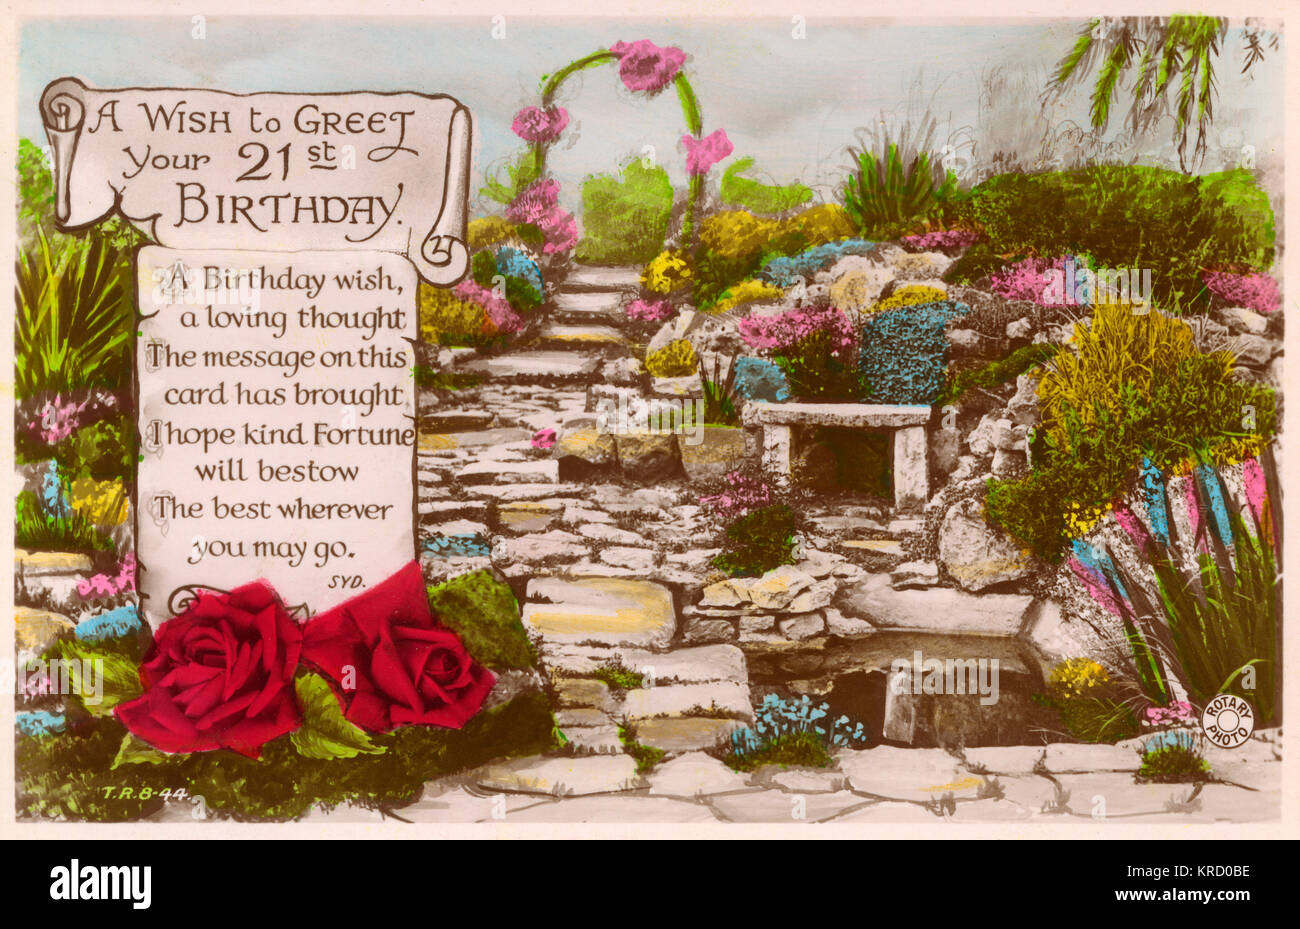 A 21st Birthday Card Showing A Garden Path Decorated With Flowers